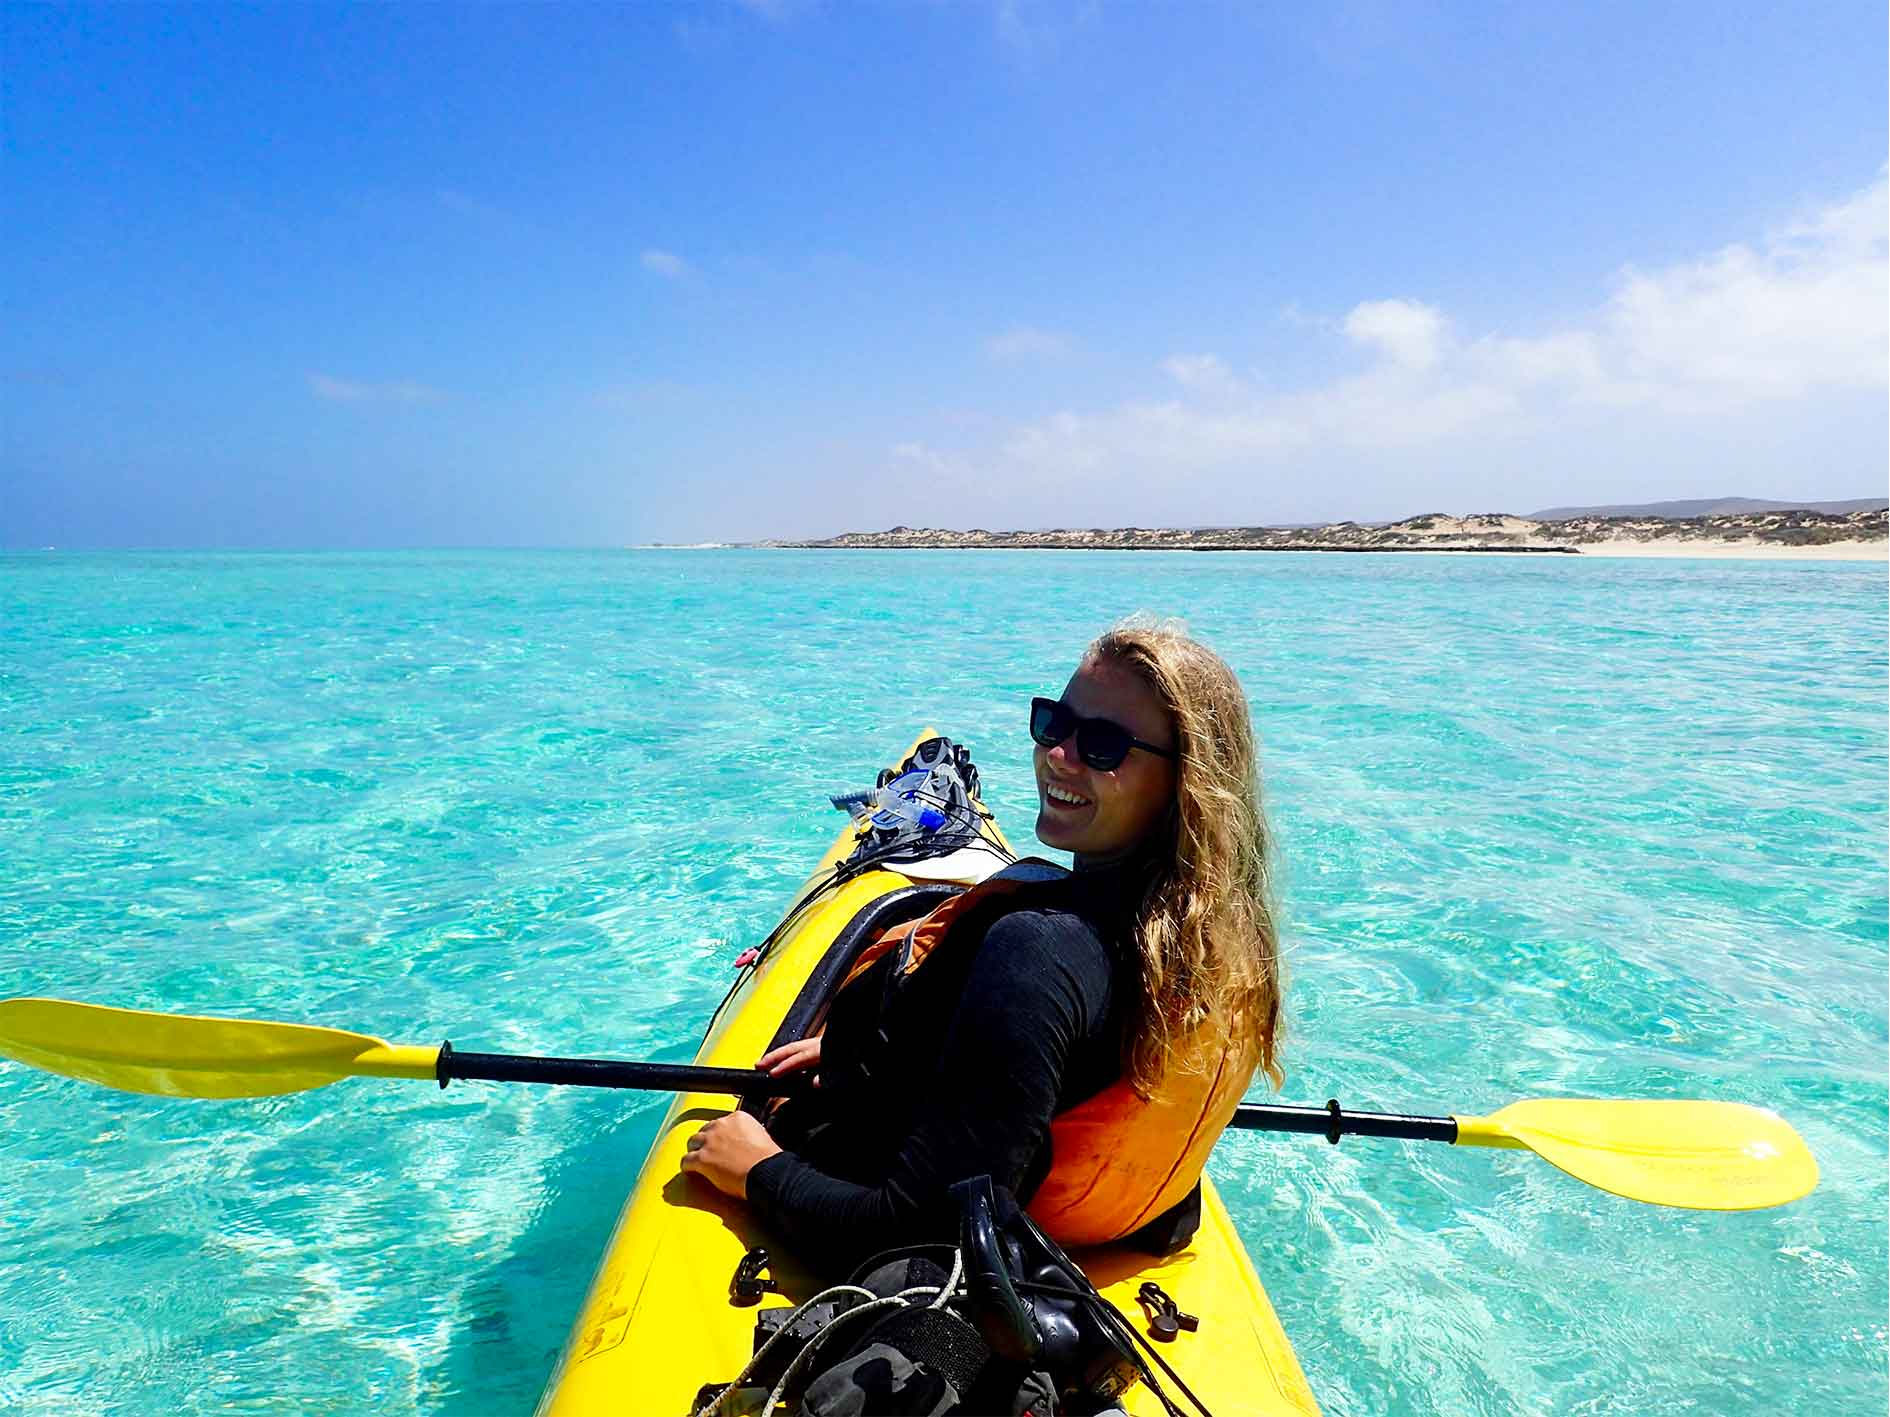 Smiling lady paddling a sea kayak on Lagoon Explorer day tour at Ningaloo Reef, Exmouth, Western Australia